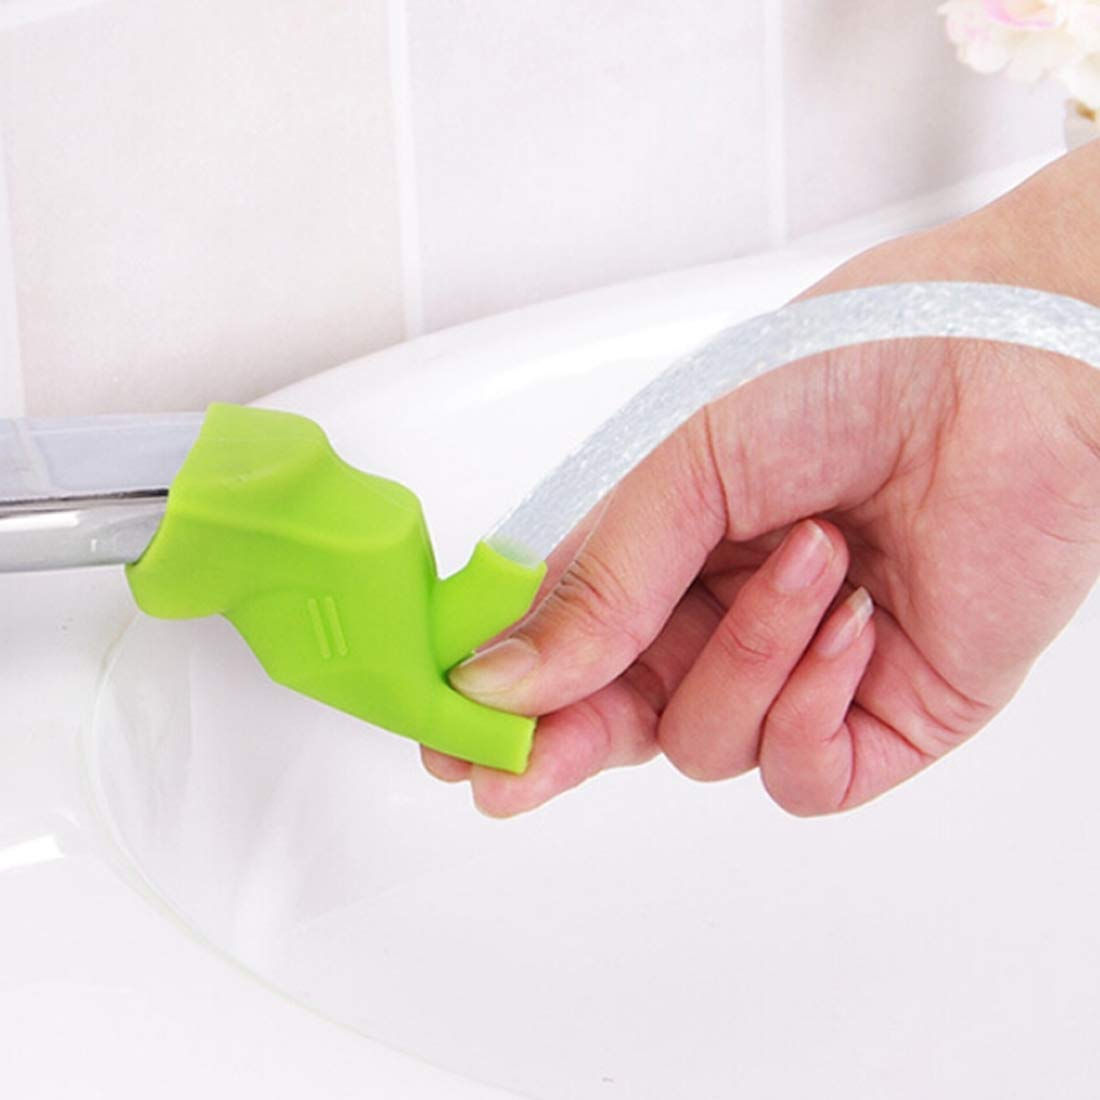 DSLSM Special Design 10 PCS Children Silicone Guide Trough Extender Faucet Washing Device (Color : Green)